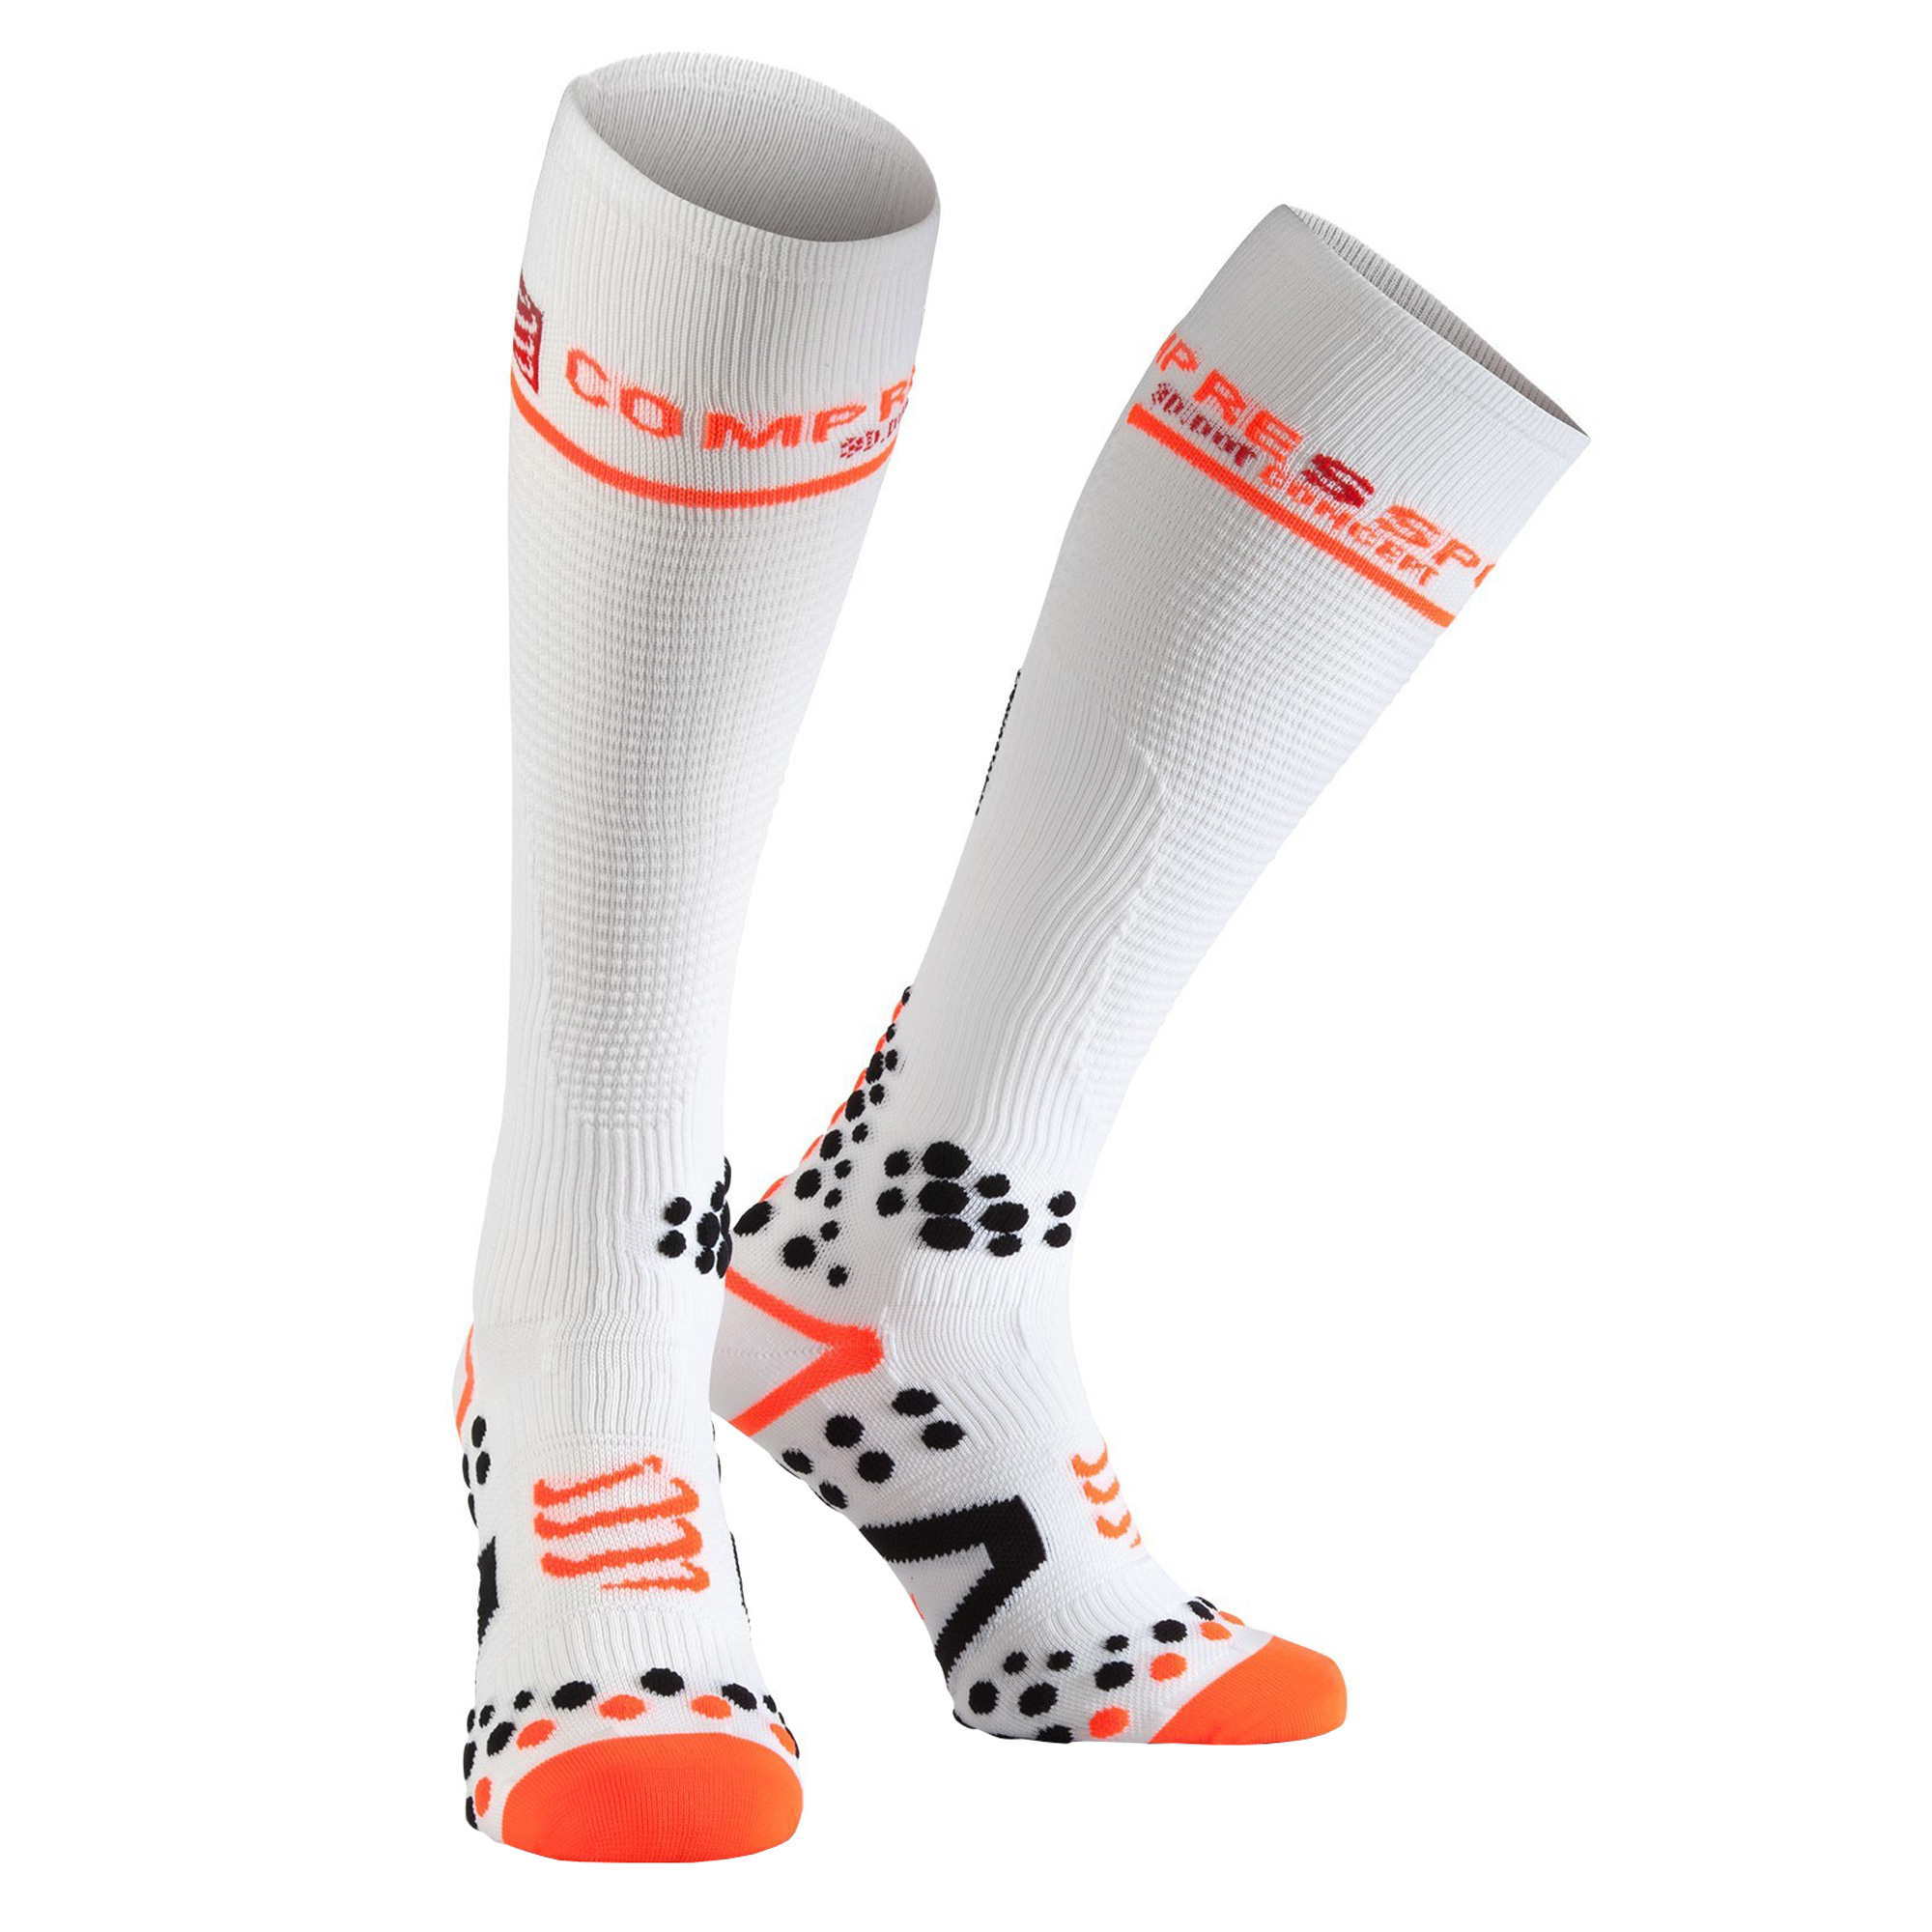 Skarpety kompresyjne Full Socks do biegania 2M